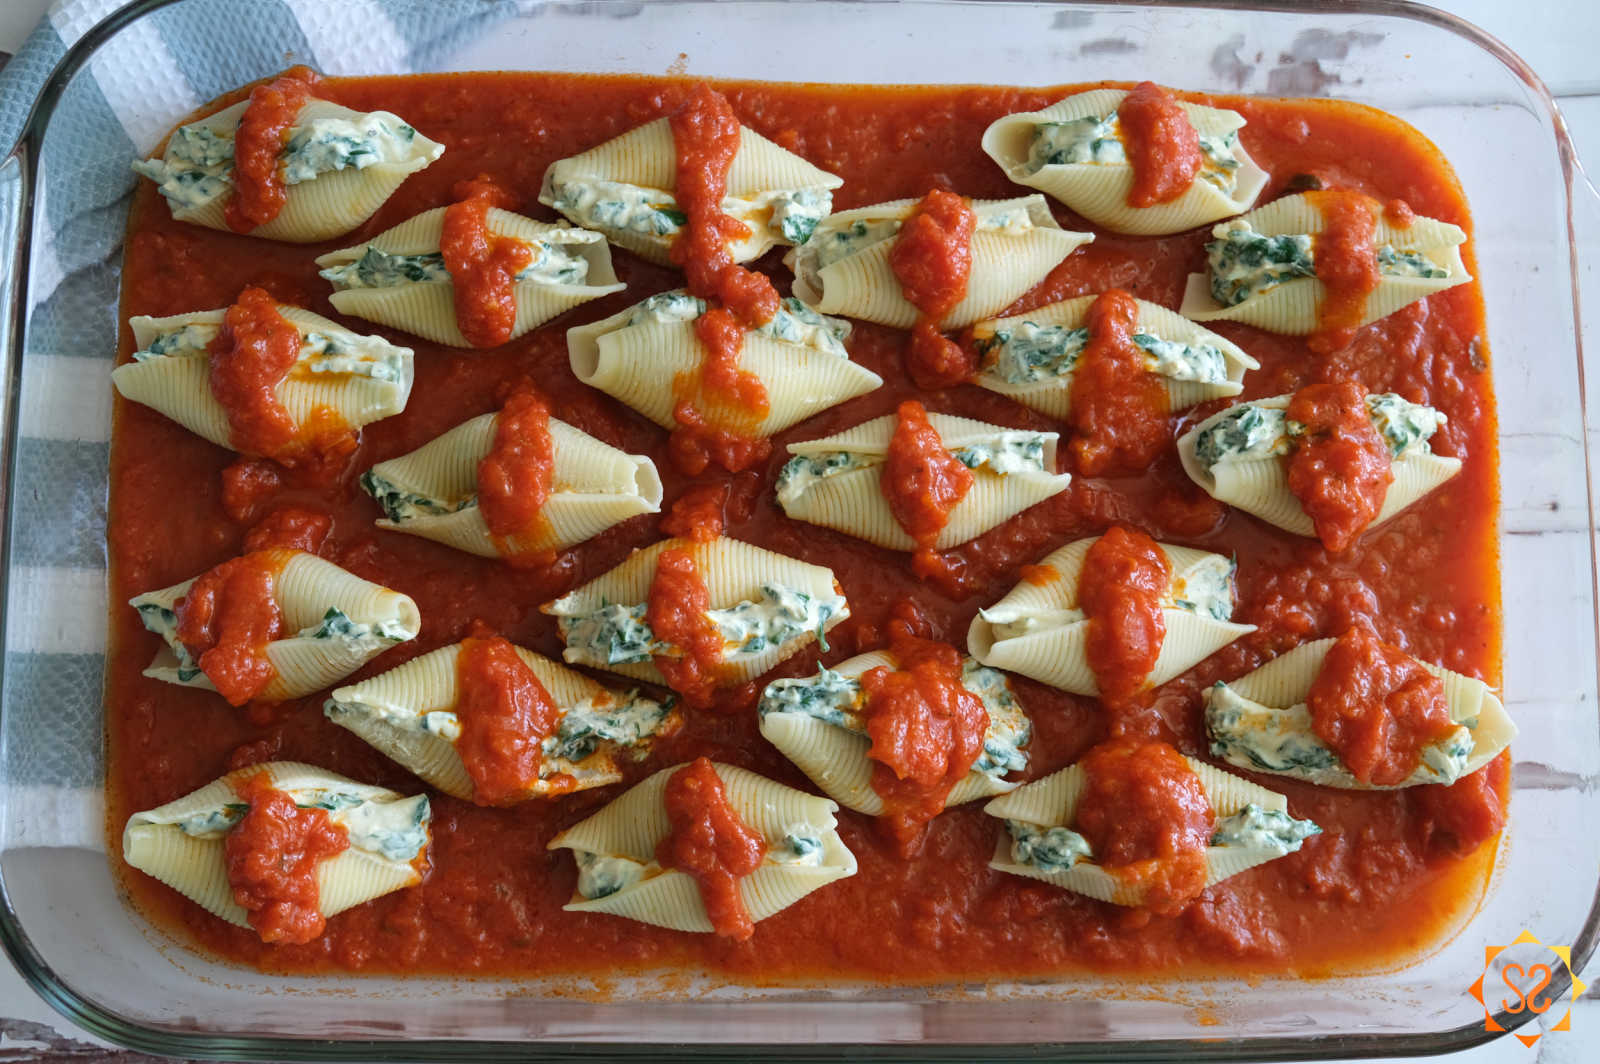 Stuffed shells in marinara sauce, in a casserole dish, ready to be baked.